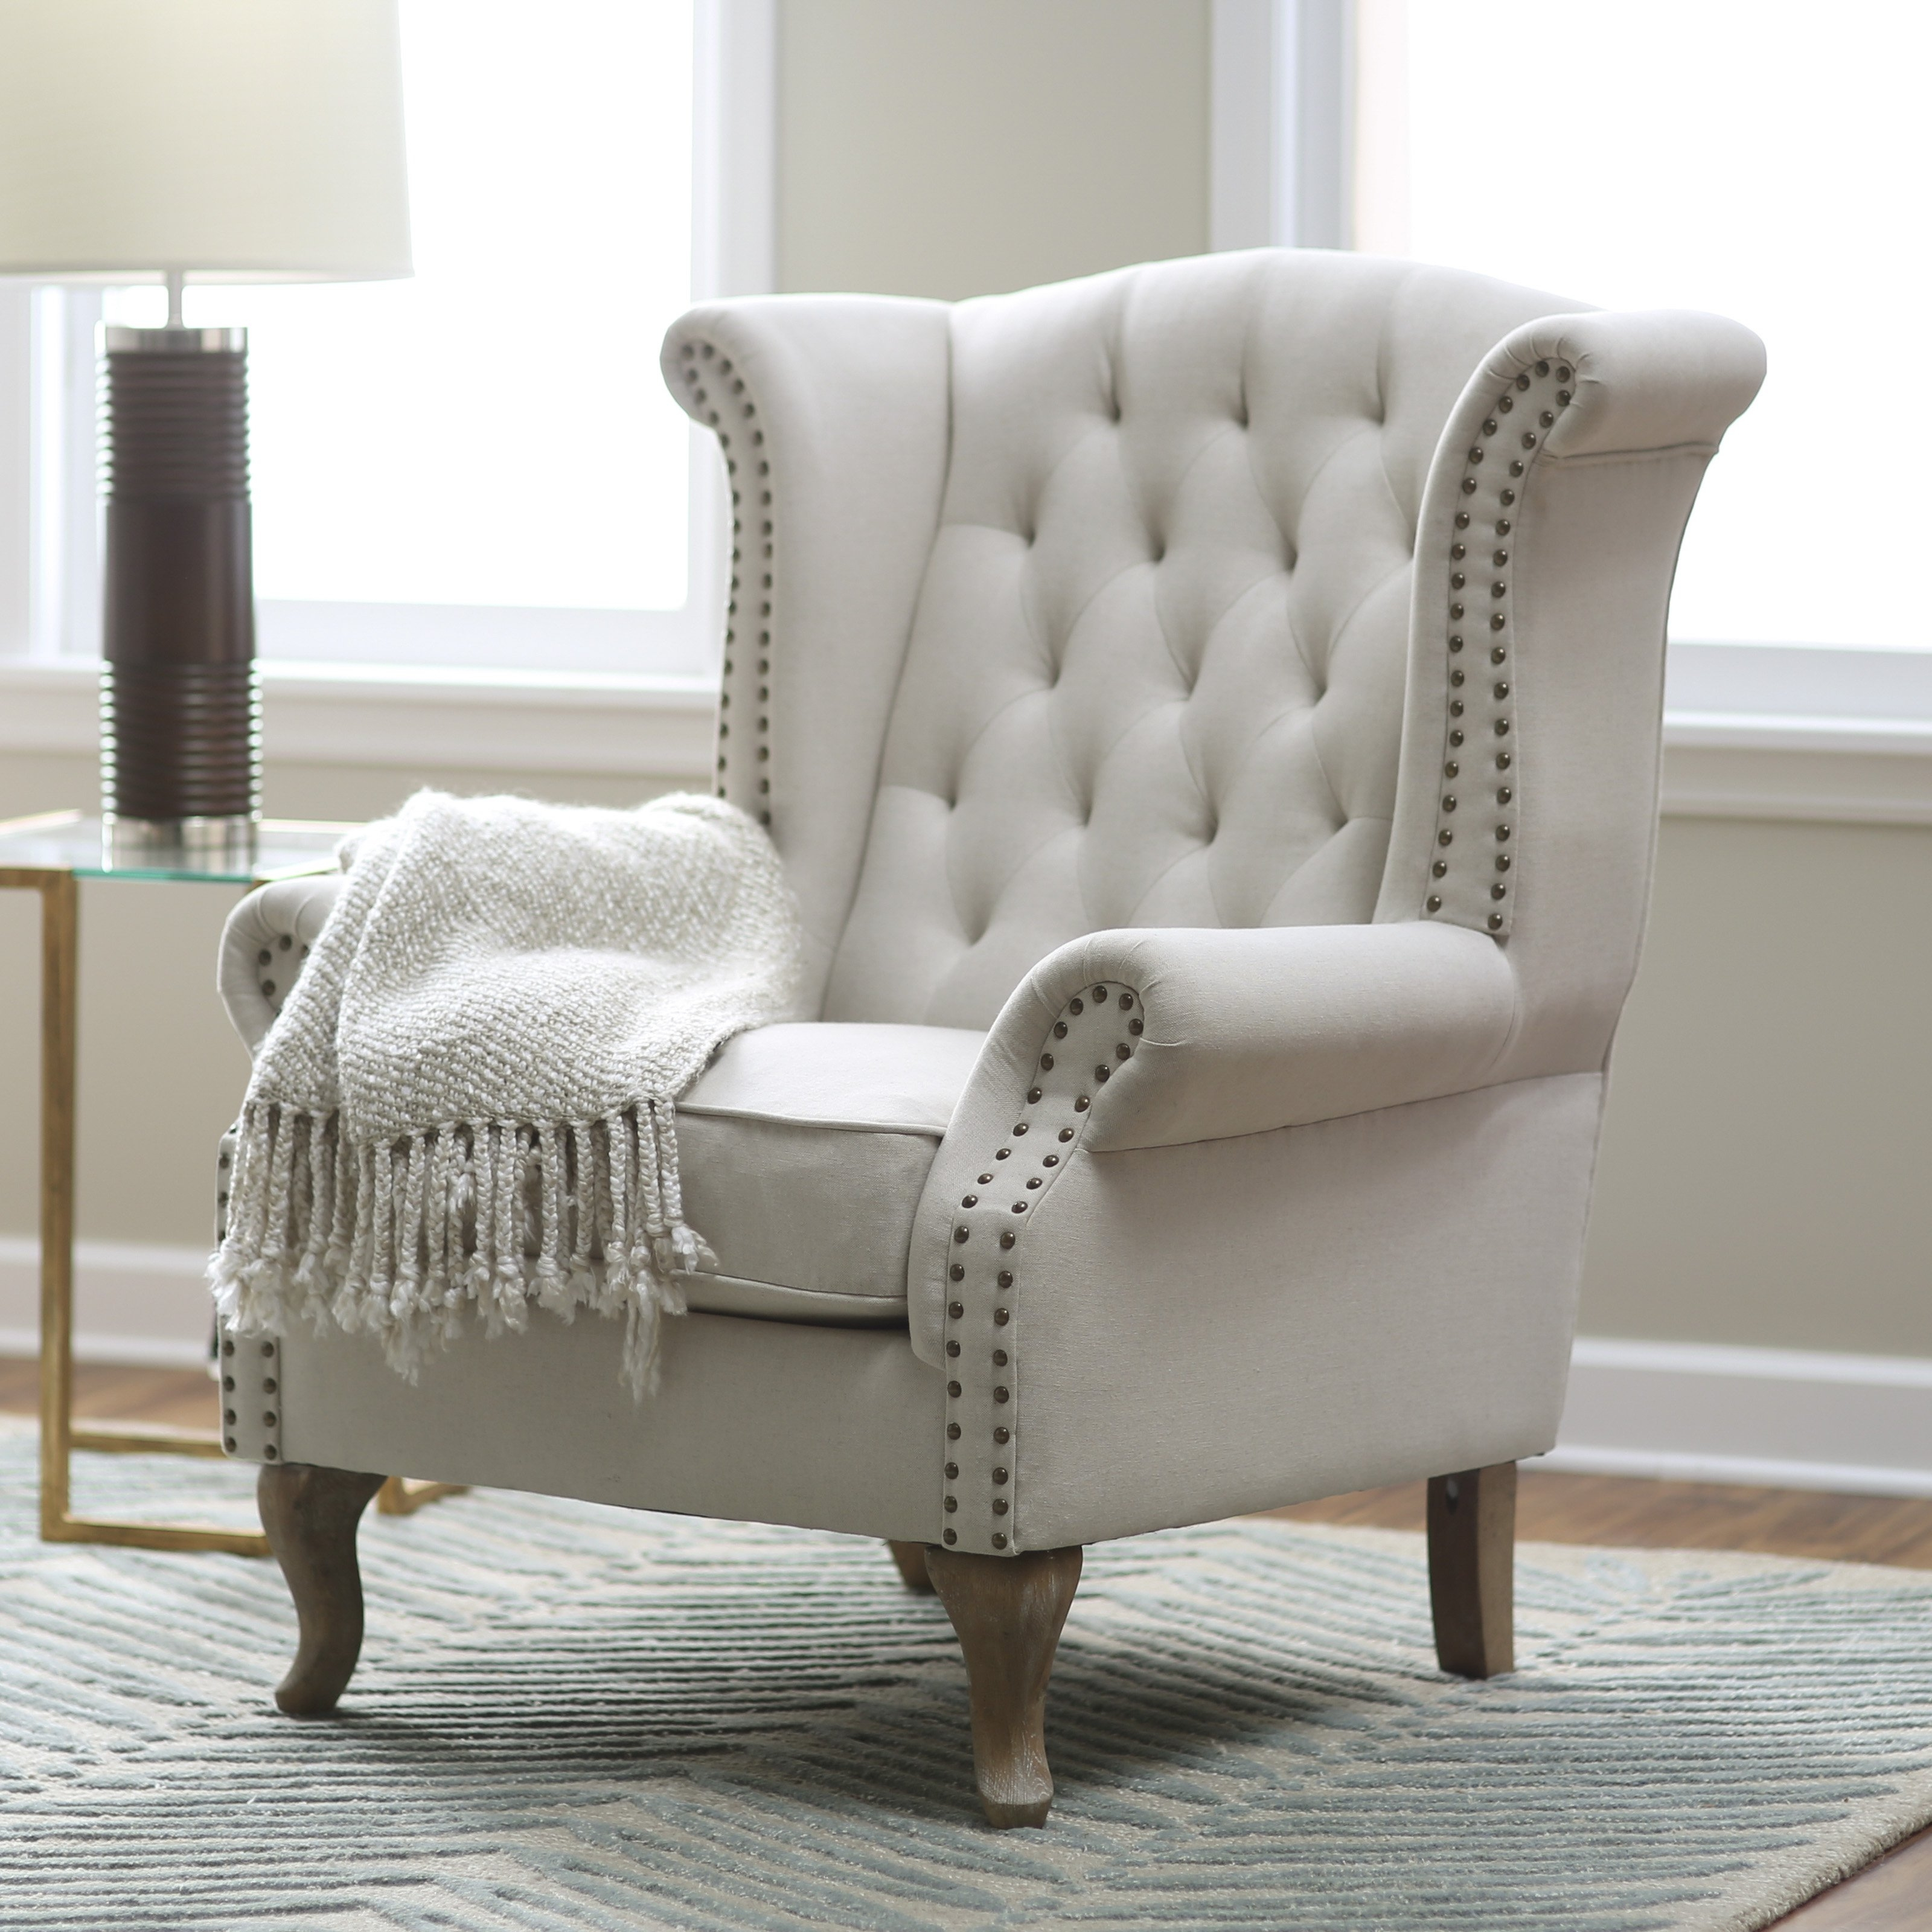 Small Accent Chairs For Bedroom Thehomelystuff For Bedroom Sofa Chairs (Image 13 of 15)